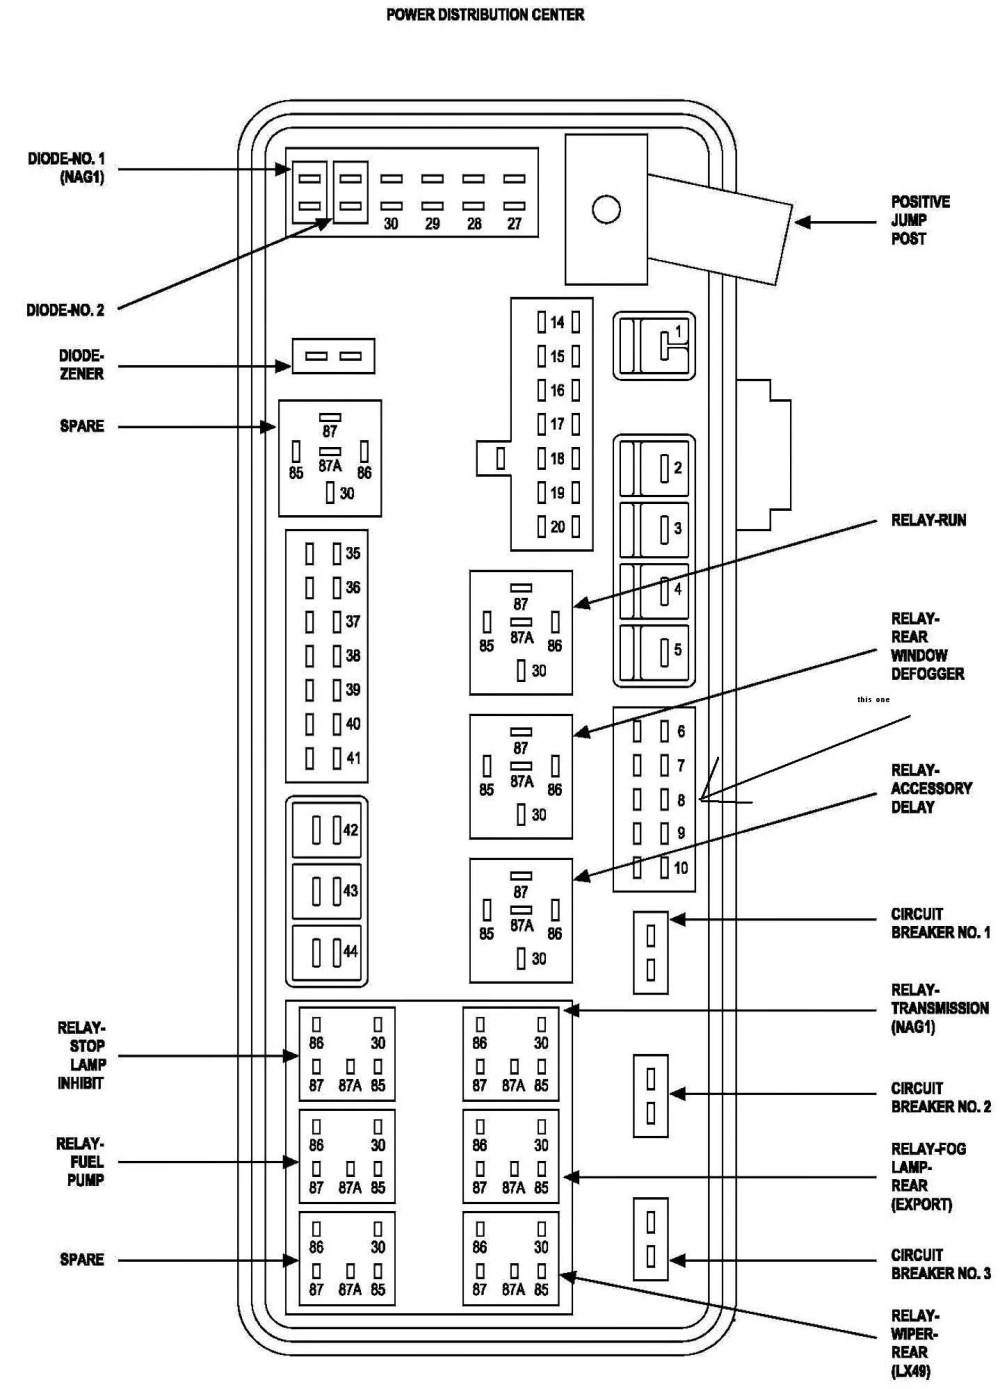 medium resolution of 2011 dodge ram 3500 fuse box diagram wiring diagram review 2011 dodge ram 1500 fuse box 2011 ram 1500 fuse box